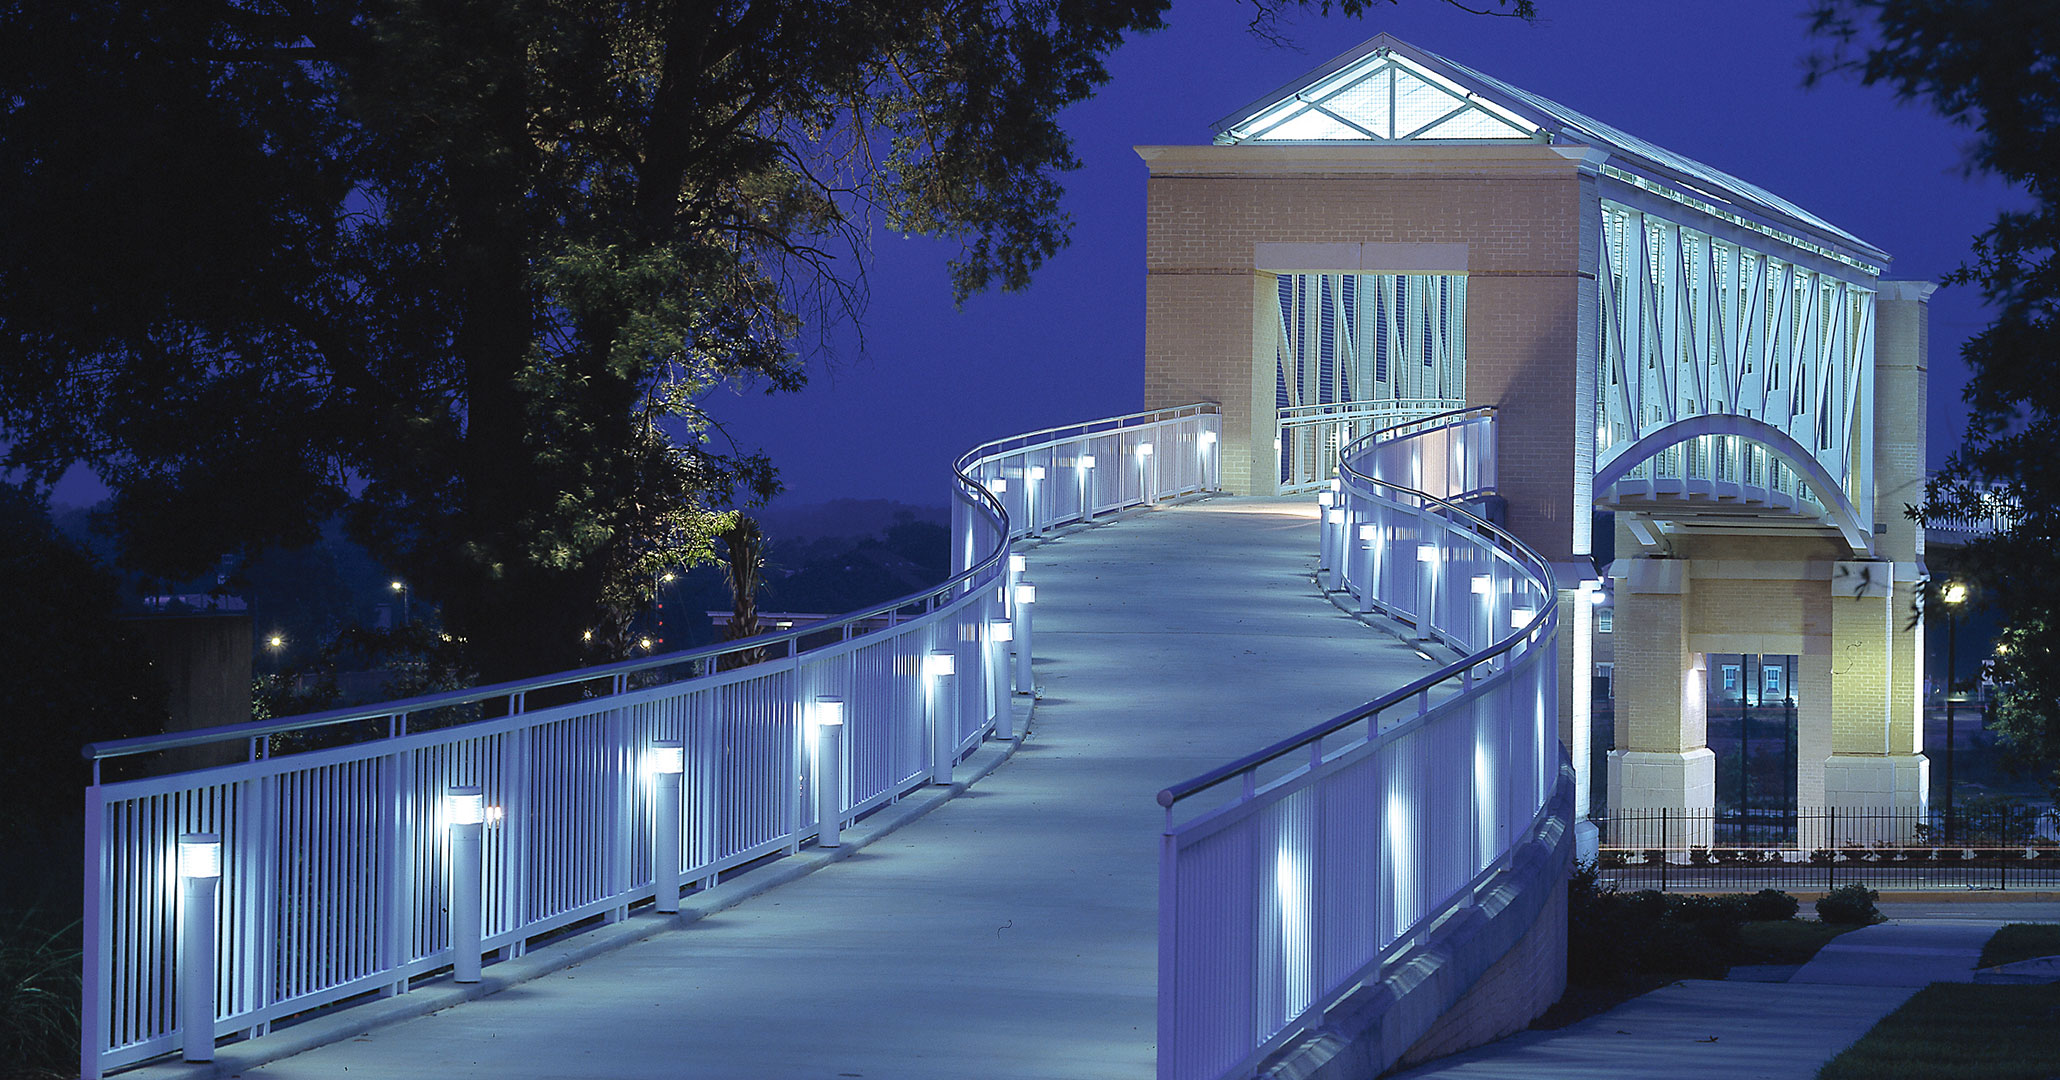 UofSC worked with Boudreaux architects to build the pedestrian student bridge in downtown Columbia, SC.